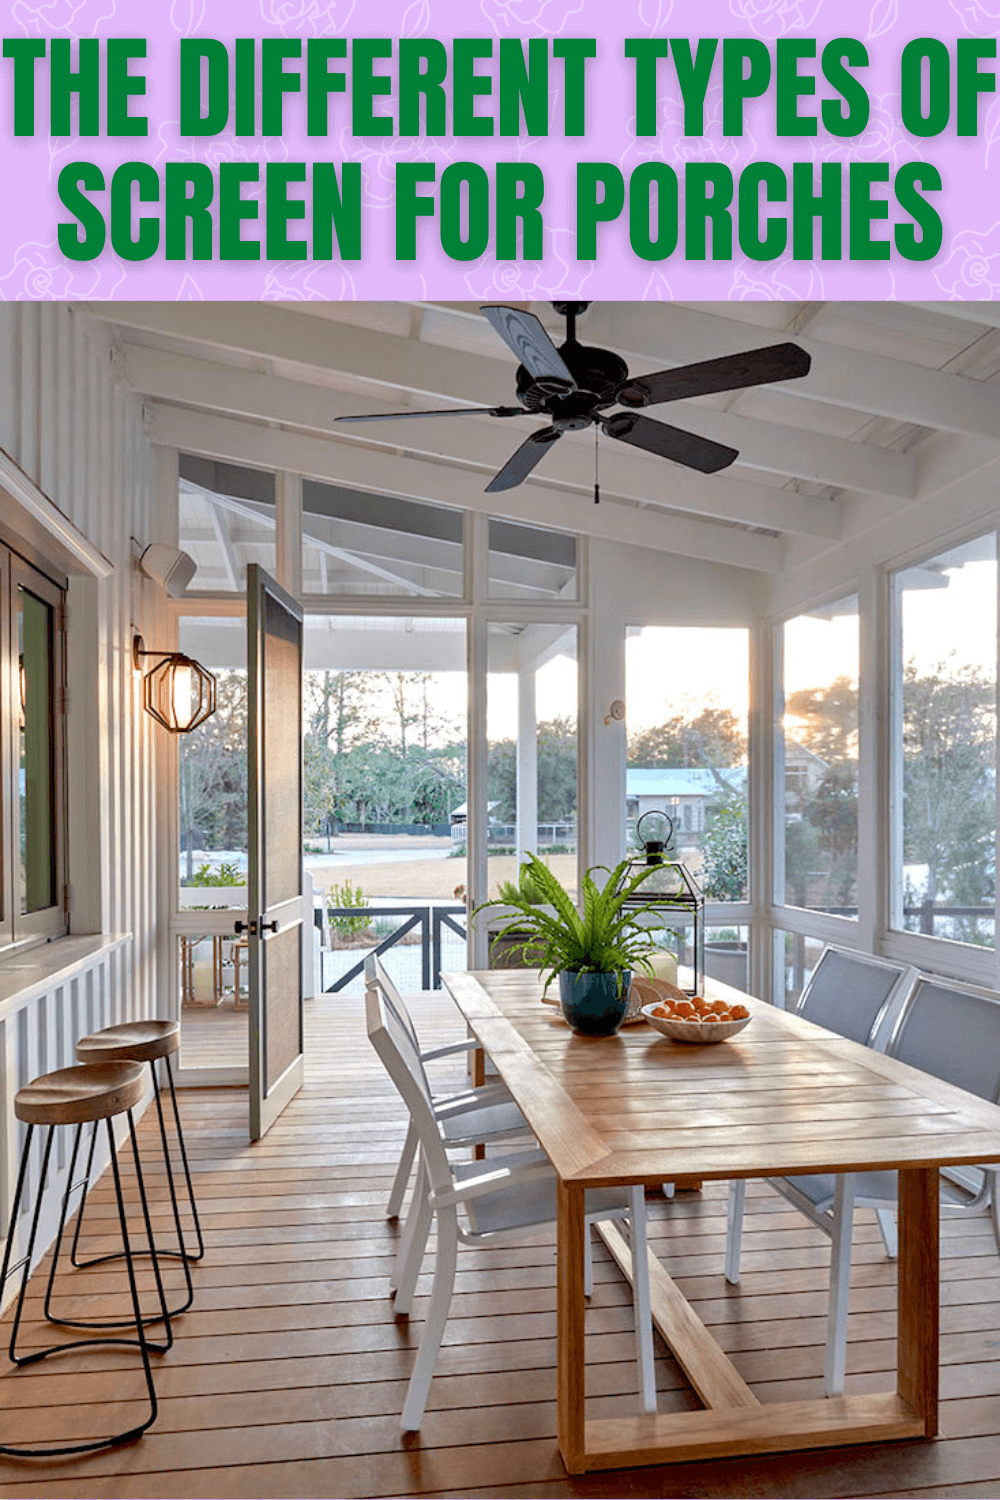 THE DIFFERENT TYPES OF SCREEN FOR PORCHES